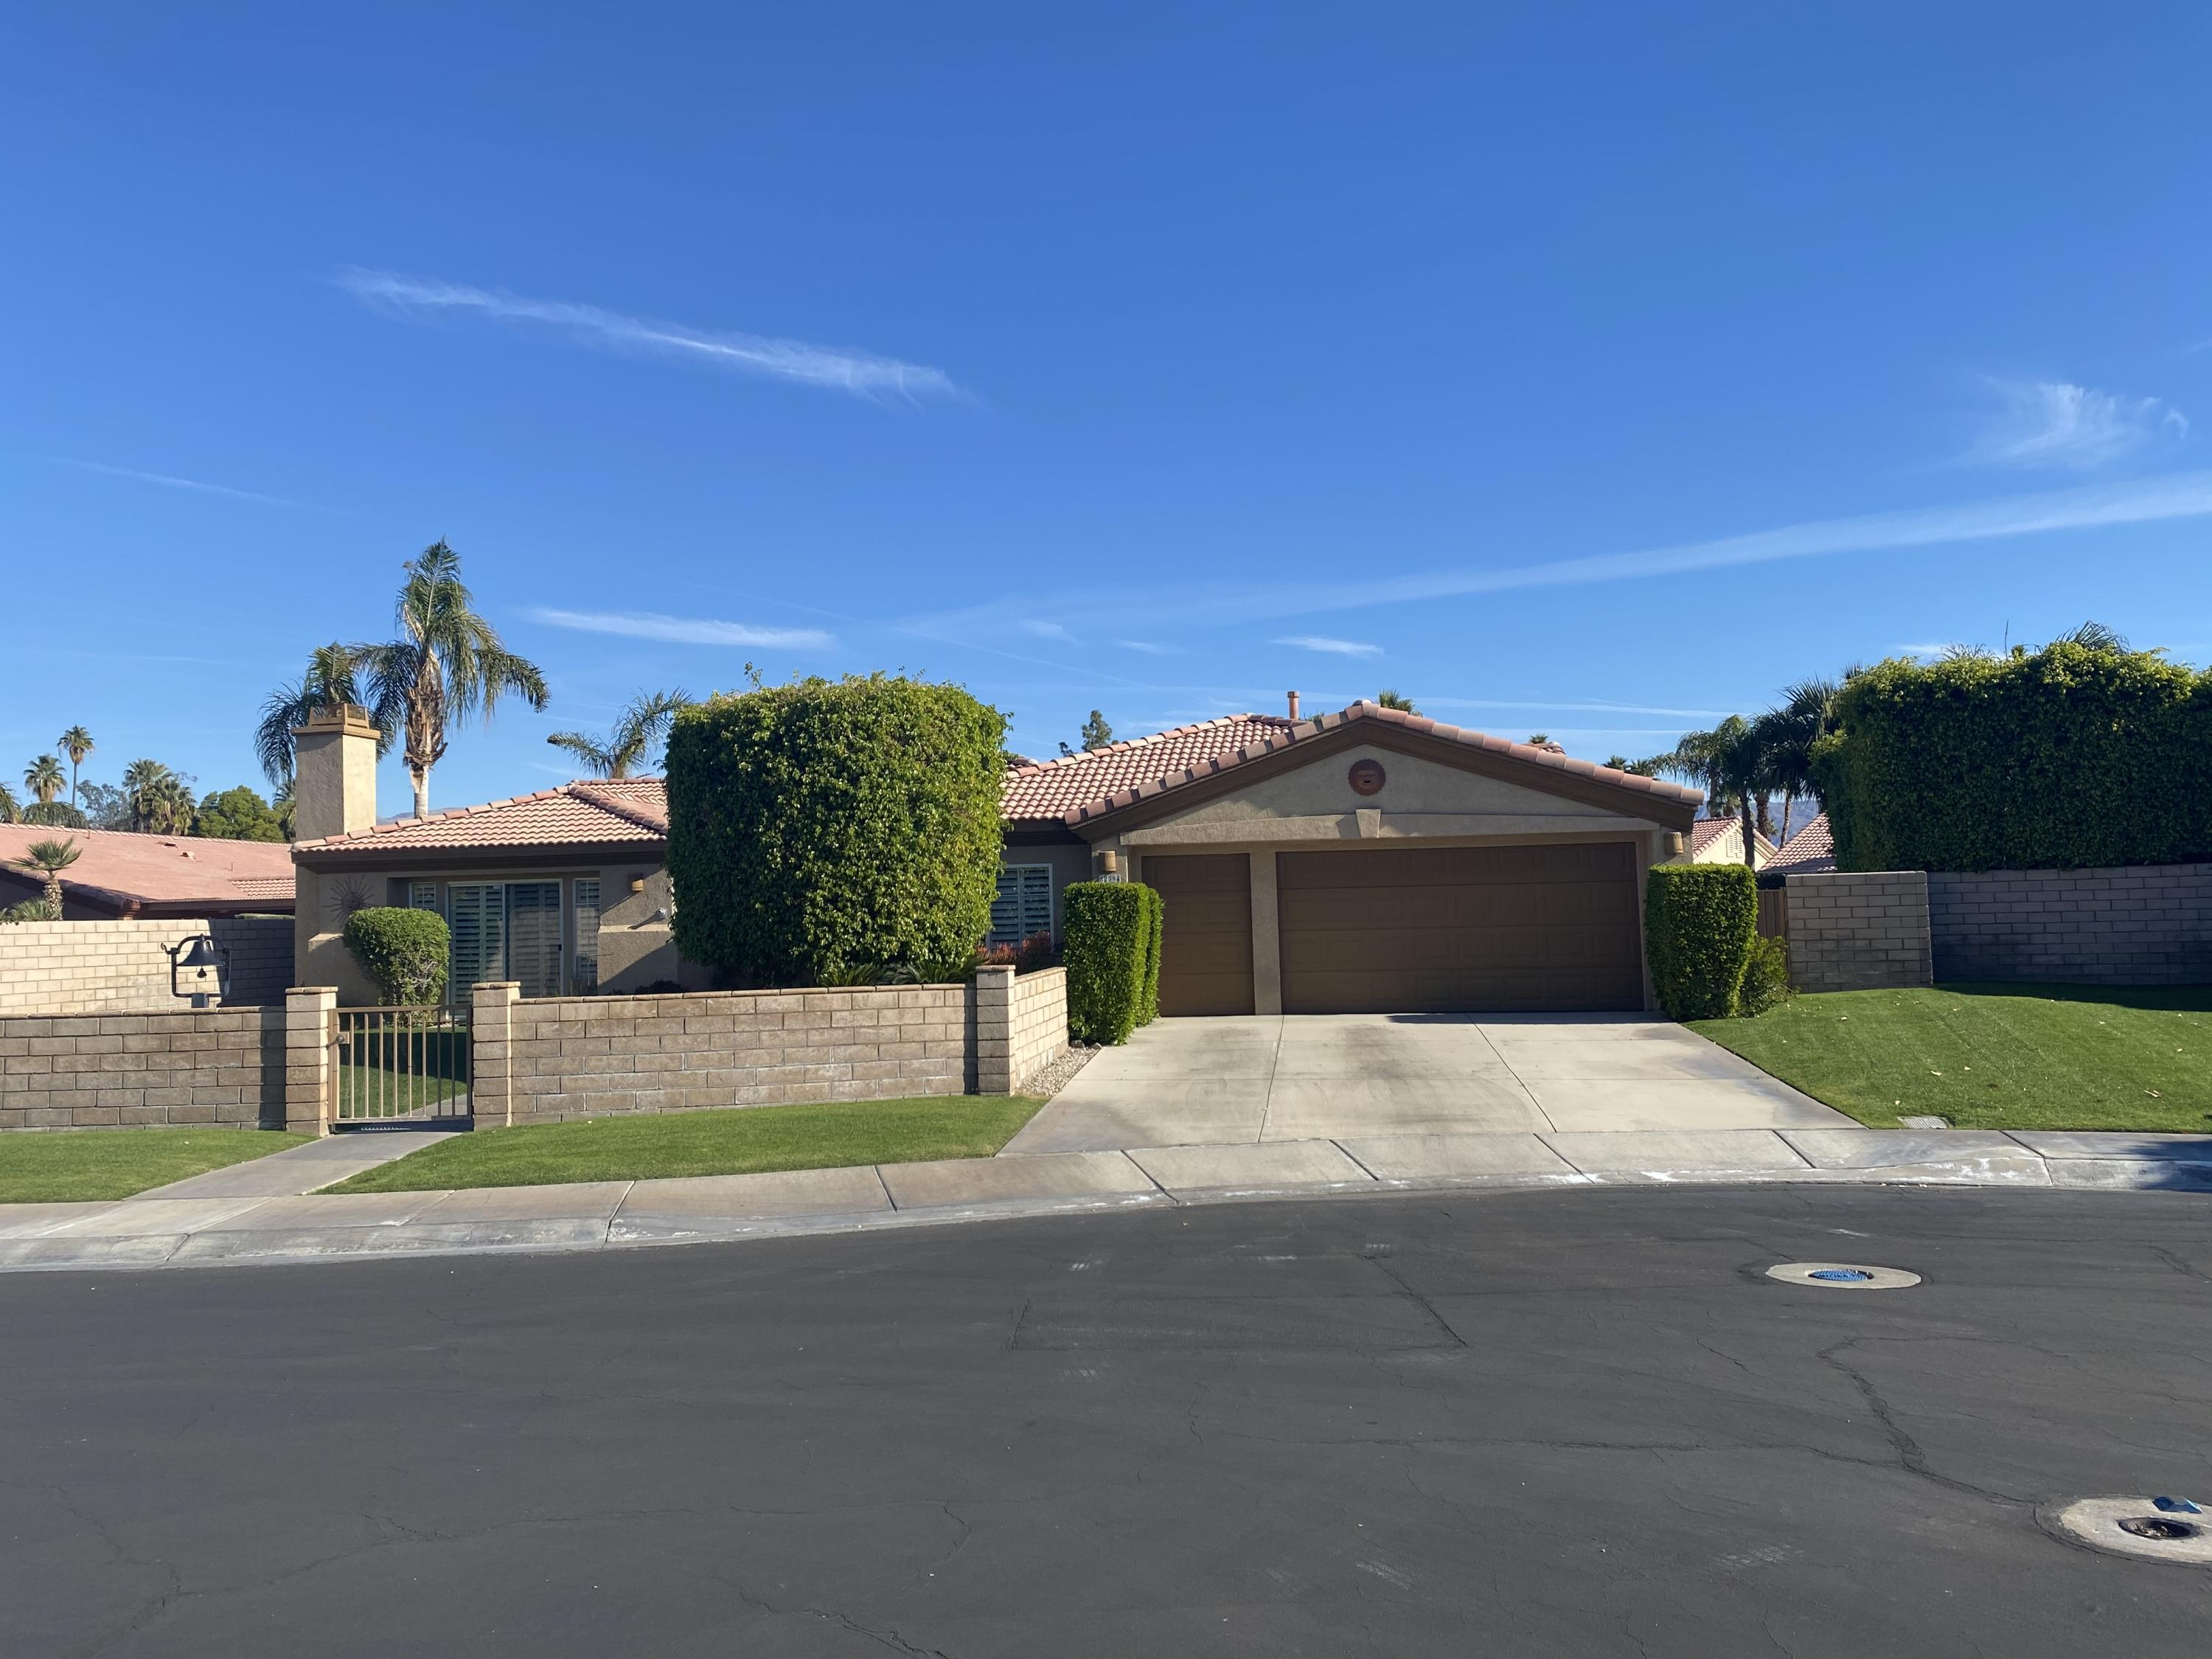 Photo of 82394 Cantor Circle, Indio, CA 92201